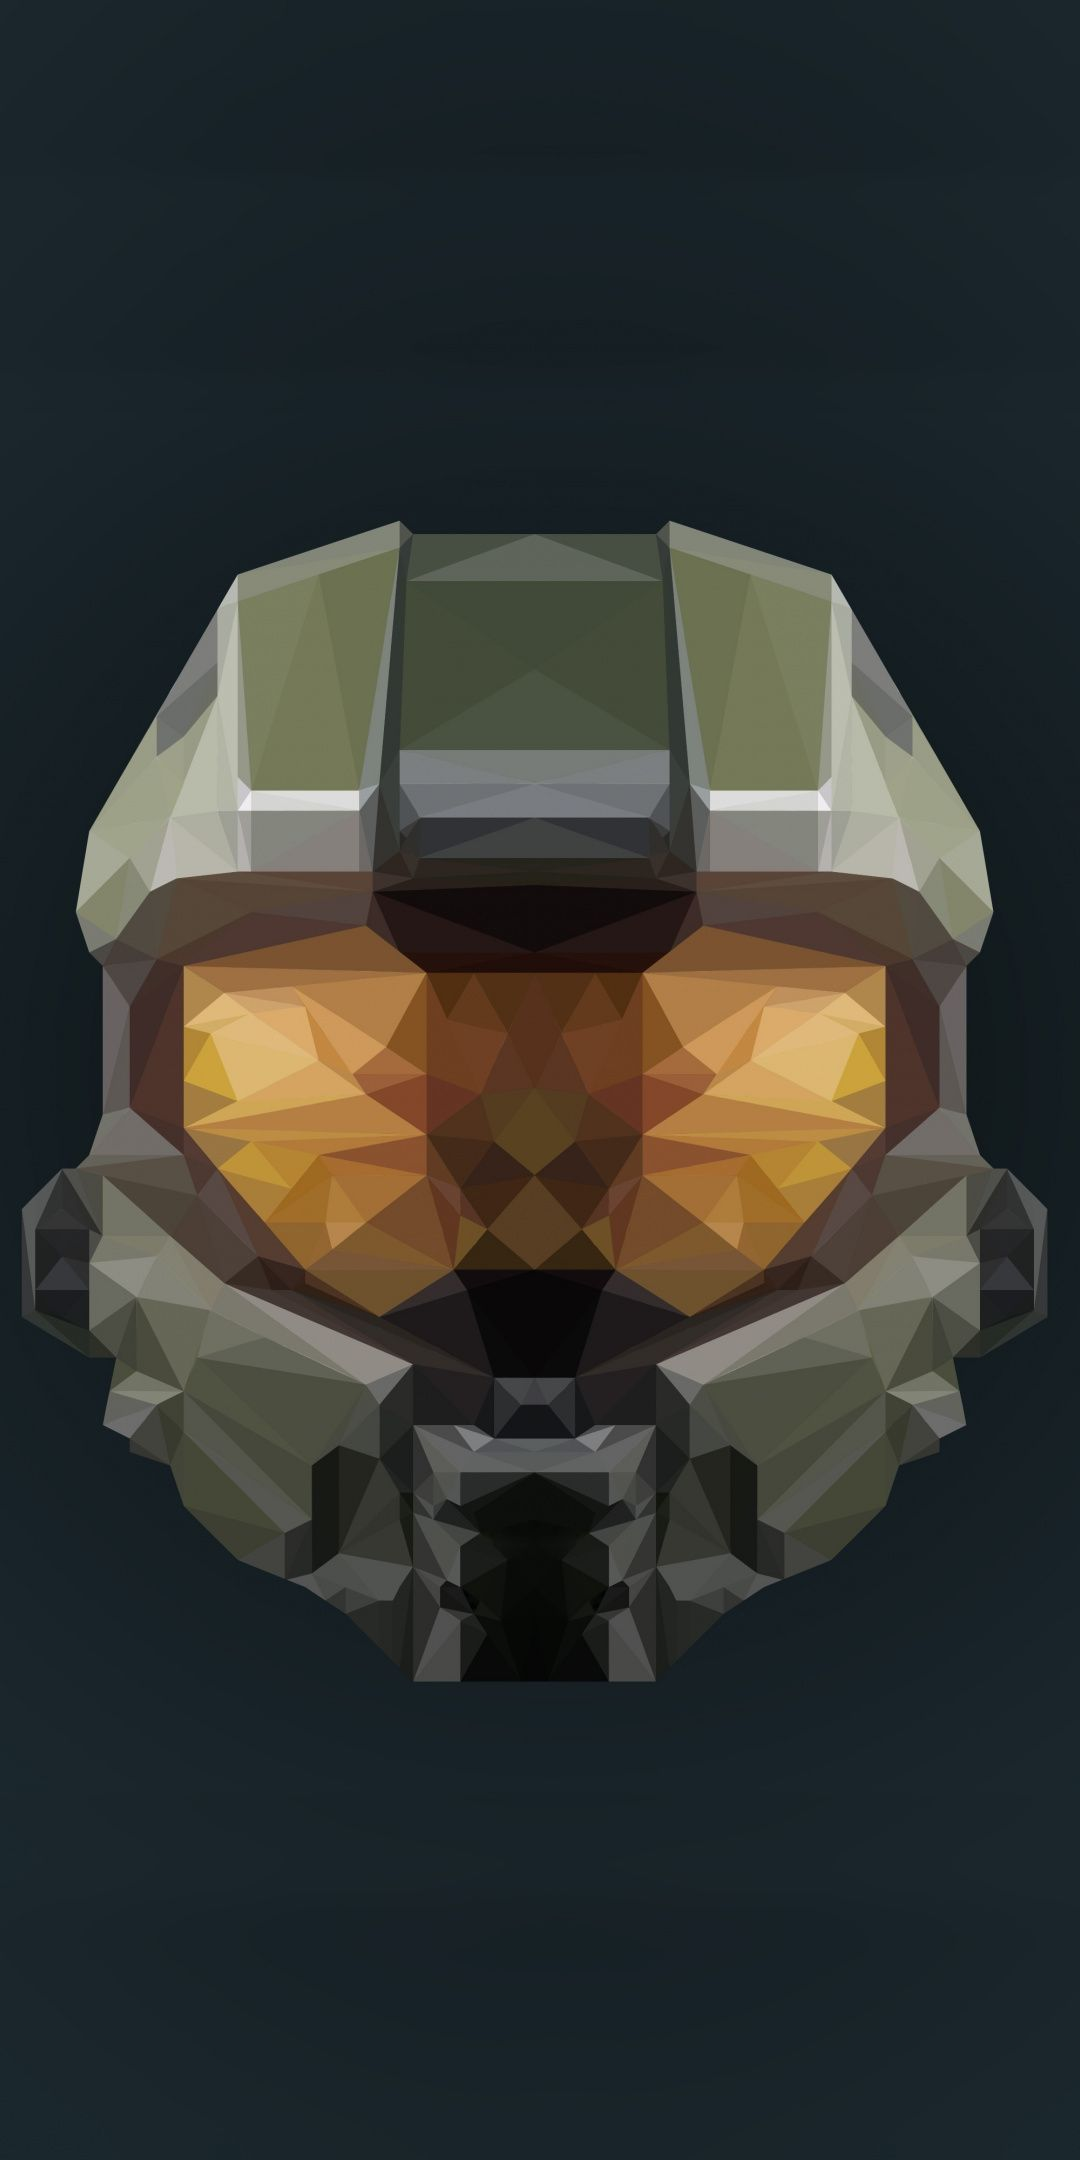 Helmet Halo Infinite Artwork Low Poly 1080x2160 Wallpaper Halo Armor Halo Halo Video Game